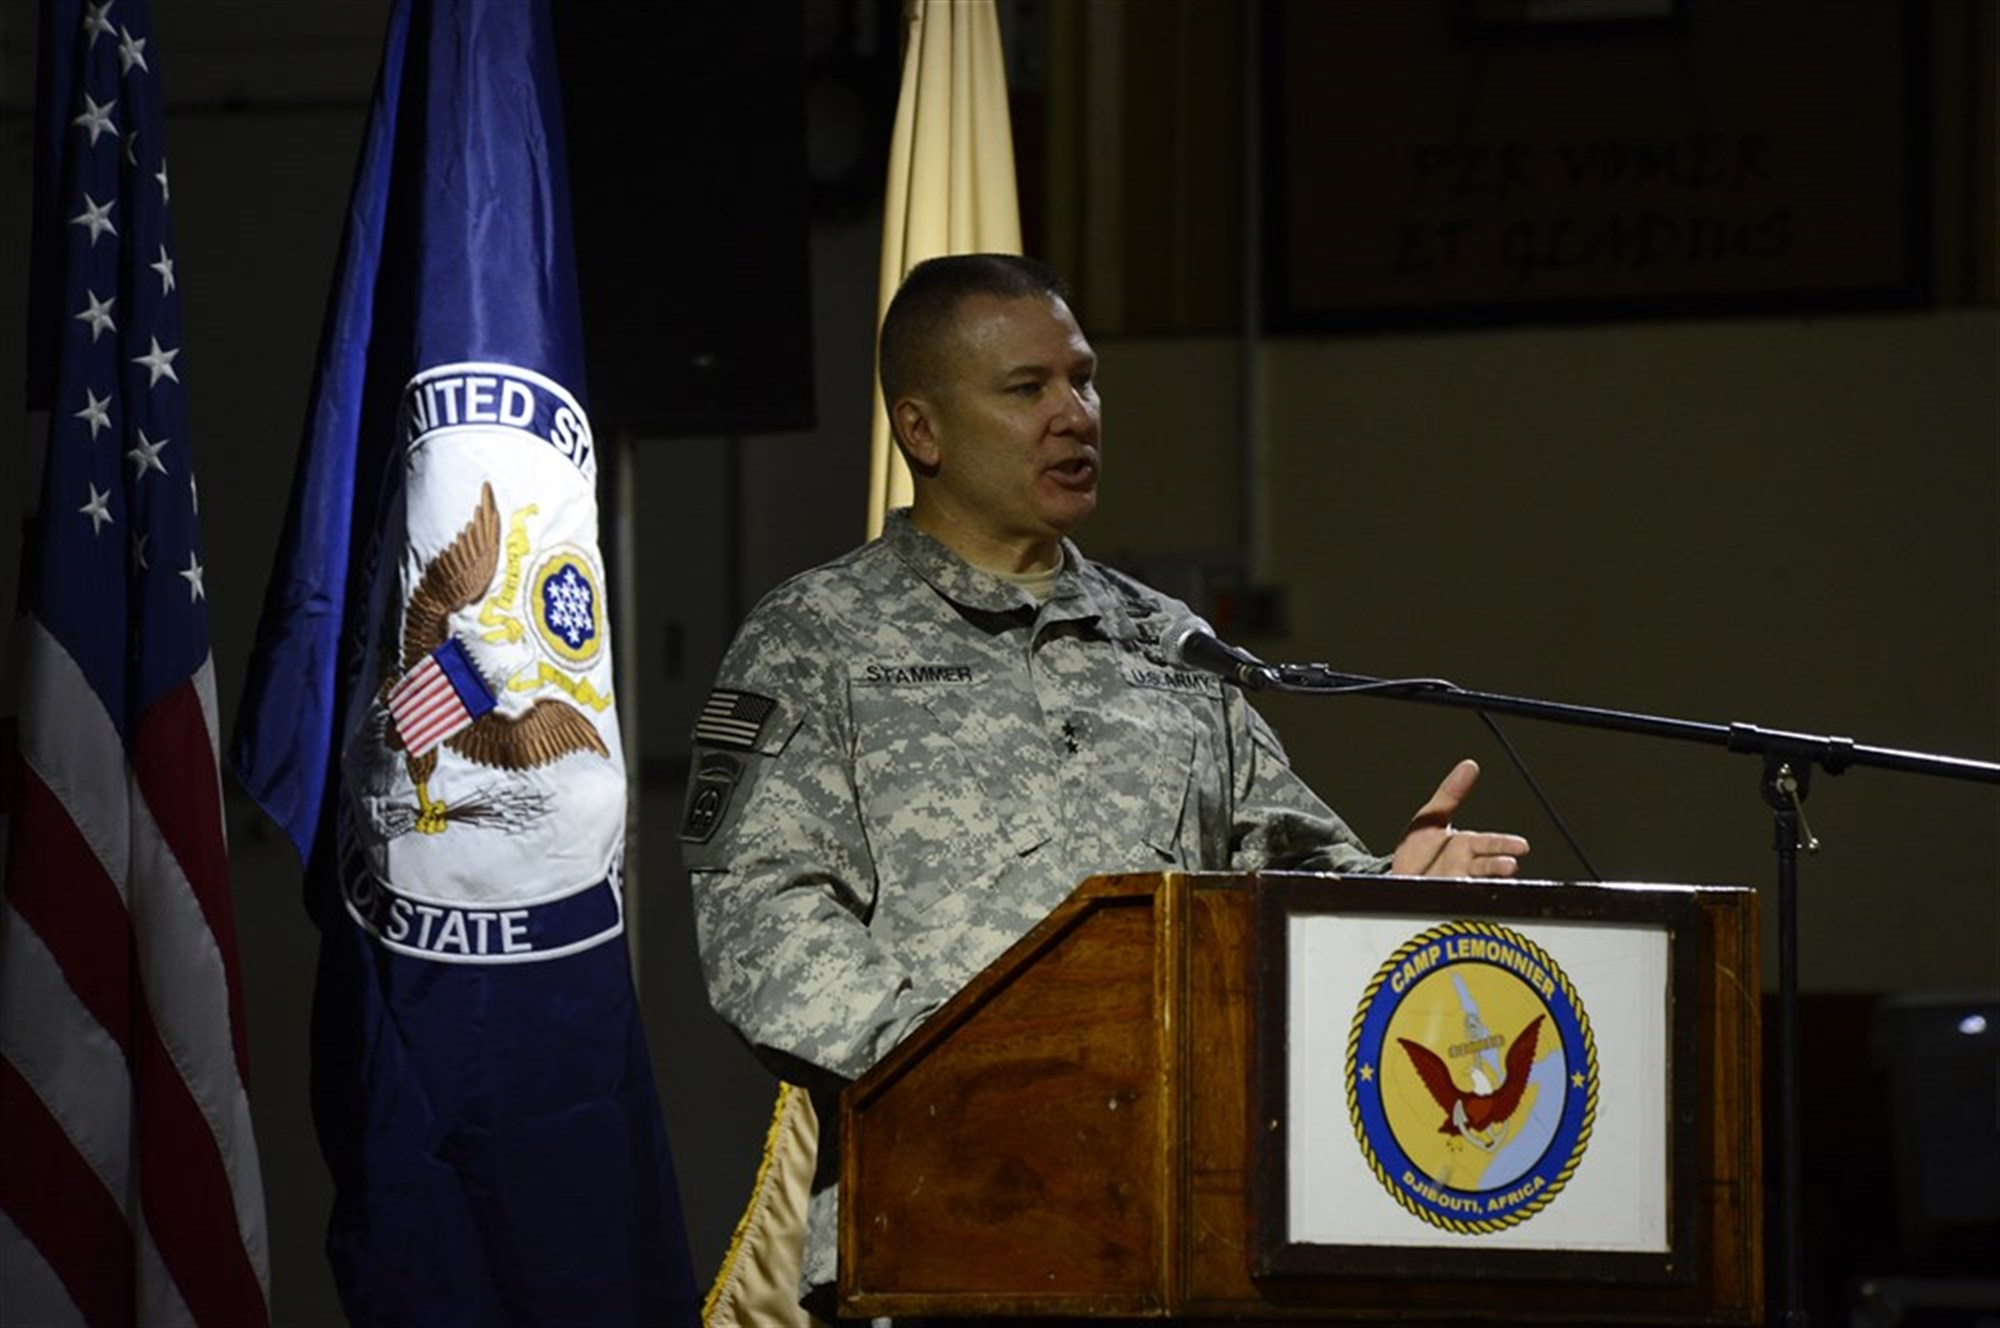 U.S. Army Maj. Gen. Mark Stammer, Combined Joint Task Force-Horn of Africa commanding general, speaks to attendees at the conclusion of the East Africa Security Synchronization Conference Jan. 22, 2016, at Camp Lemonnier, Djibouti. The conference provided an opportunity for attendees to better understand the benefits of a regional approach to African security instead of strictly country-focused planning.